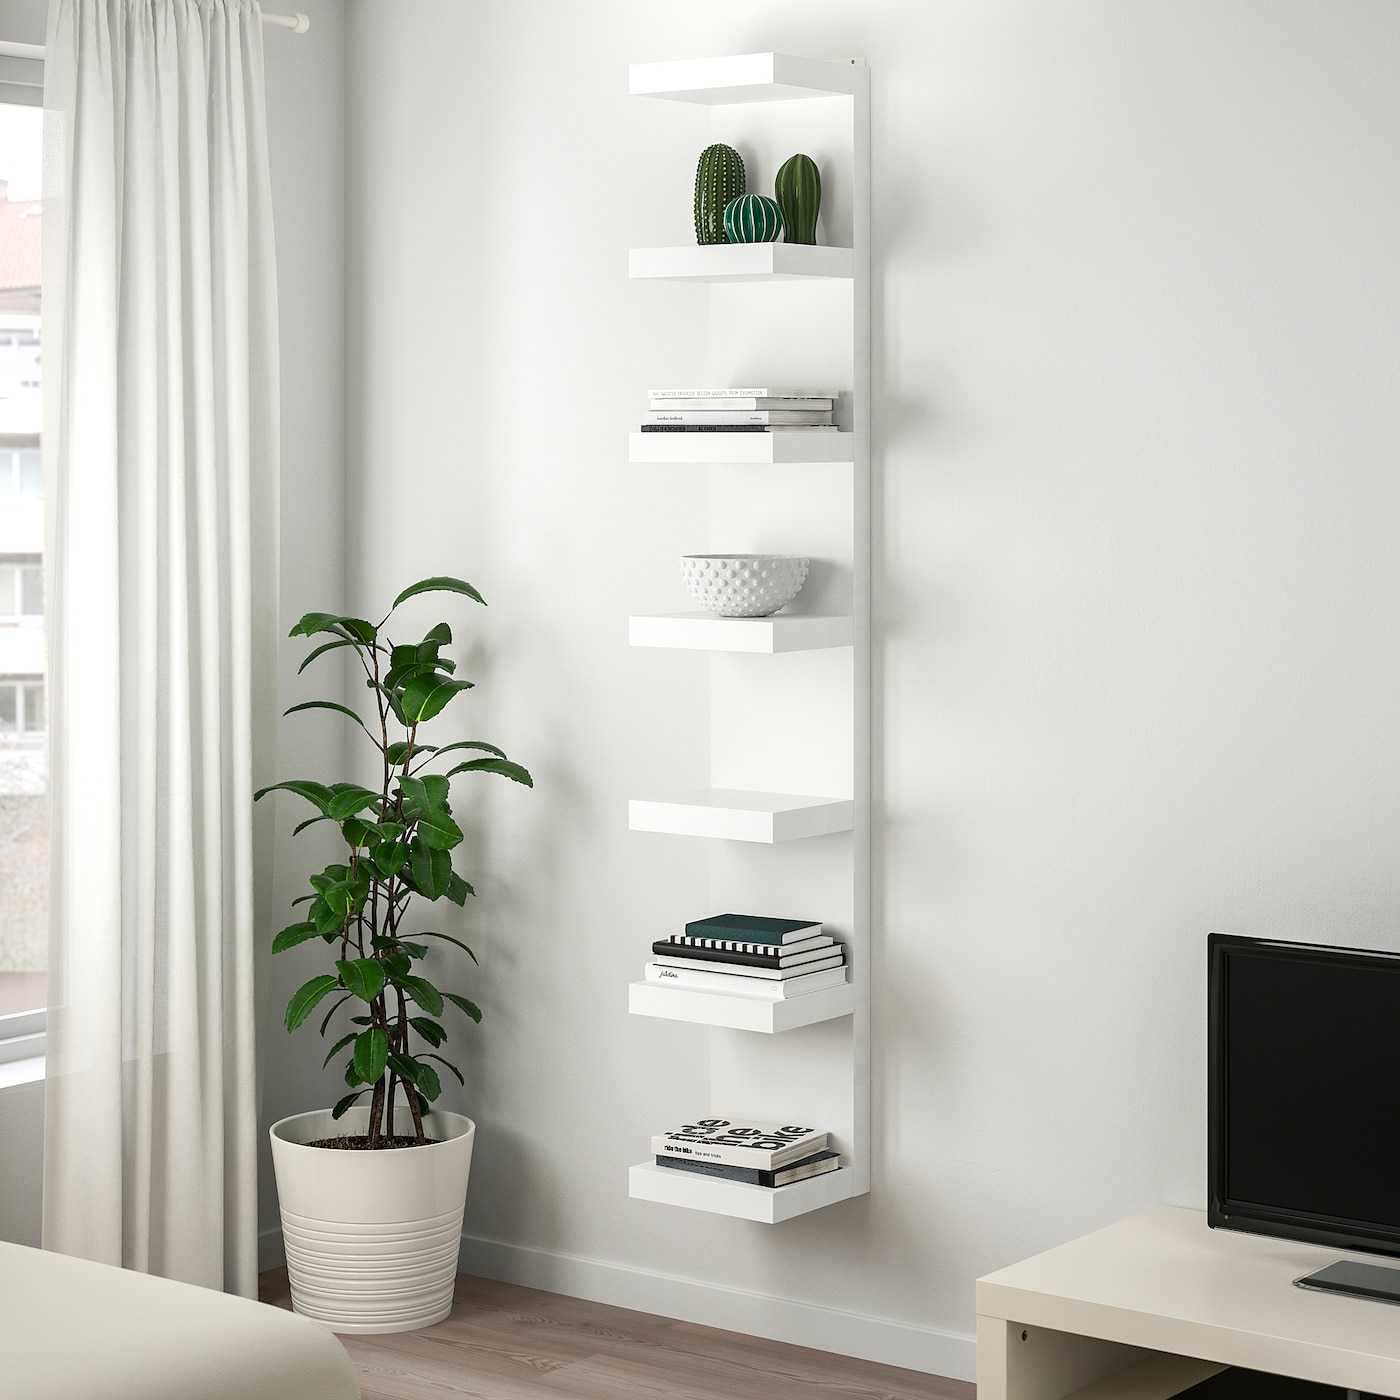 Lack Wall Shelf Unit White 30x190 Cm Ikea